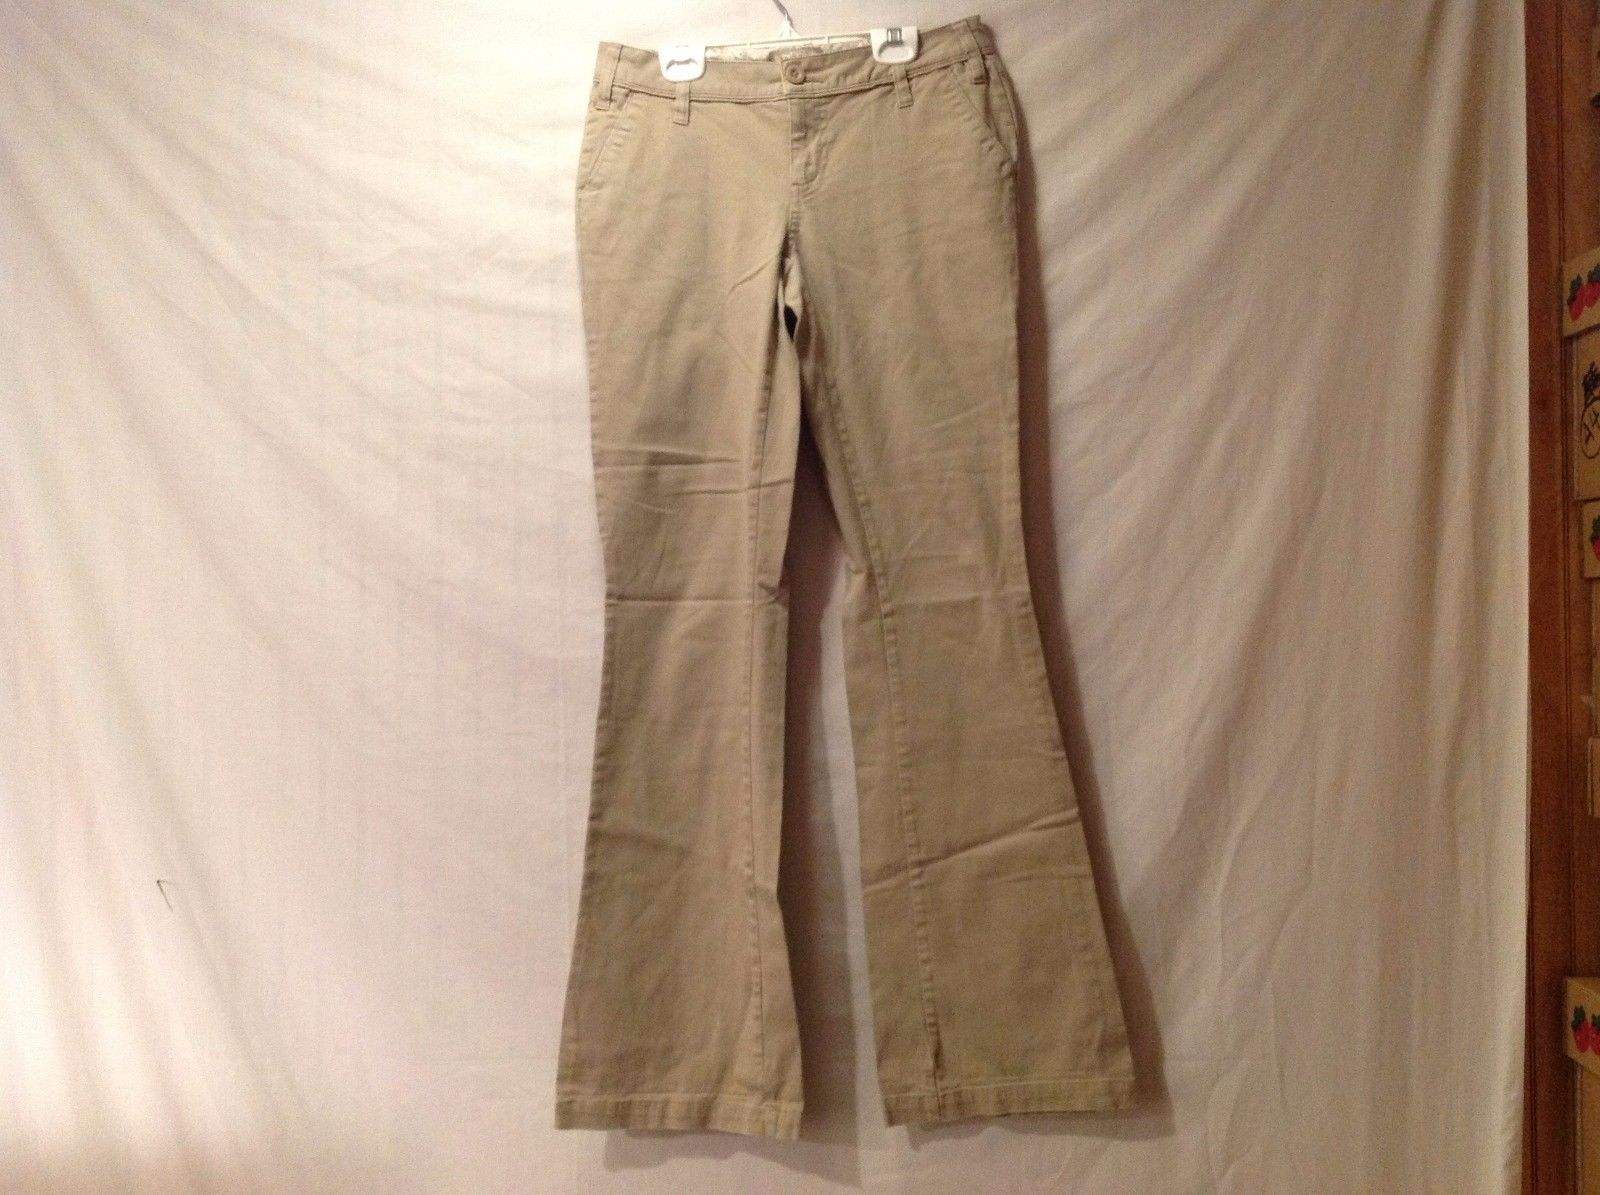 Great Condition Arizona Size 13L Cotton Blend Khaki Pants Floral Inside Print